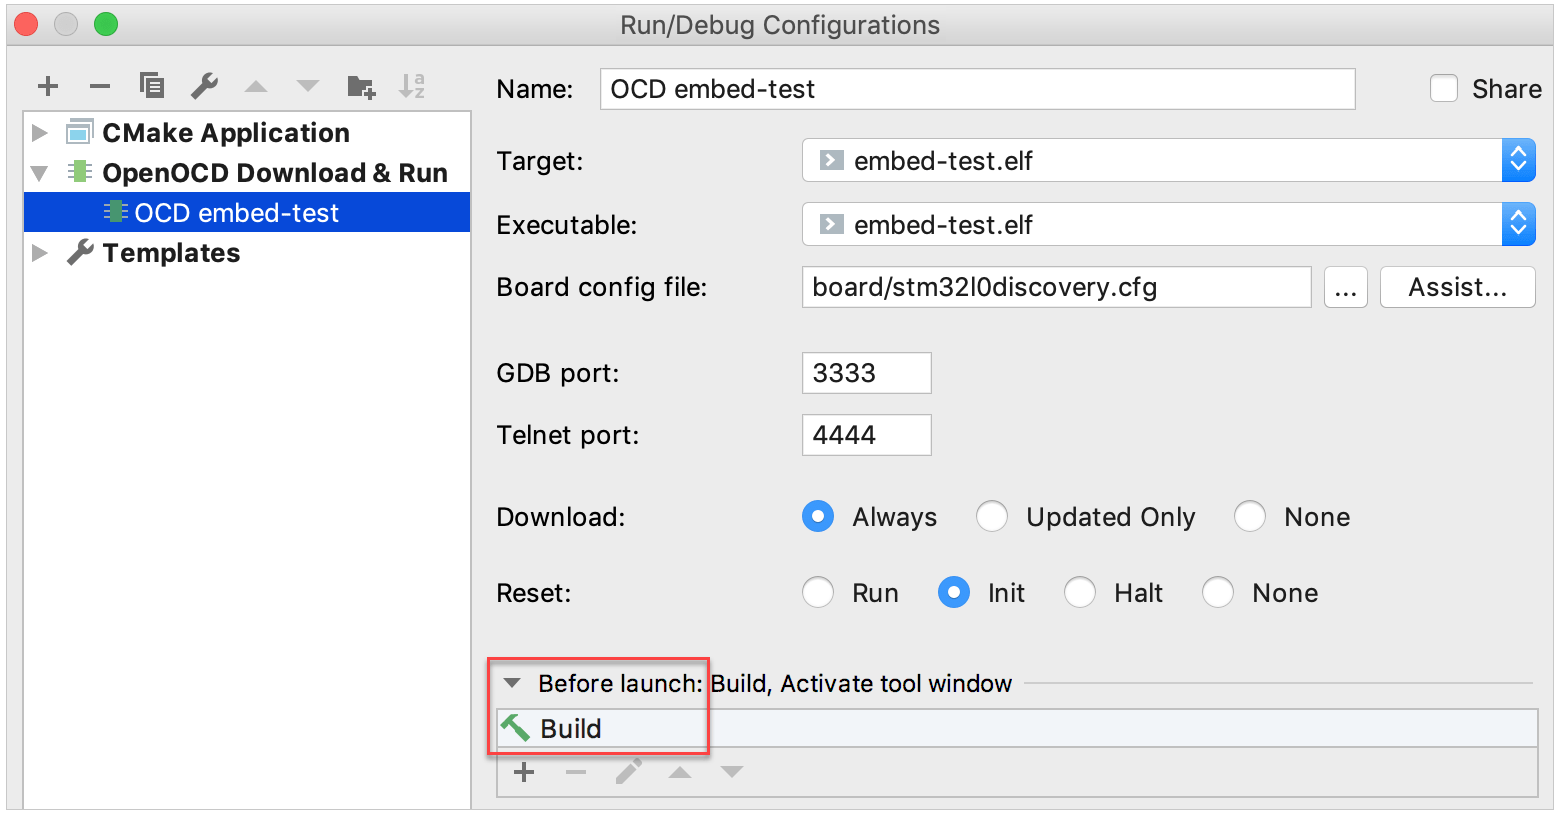 Build before launch in OpenOCD Download & Run configuration